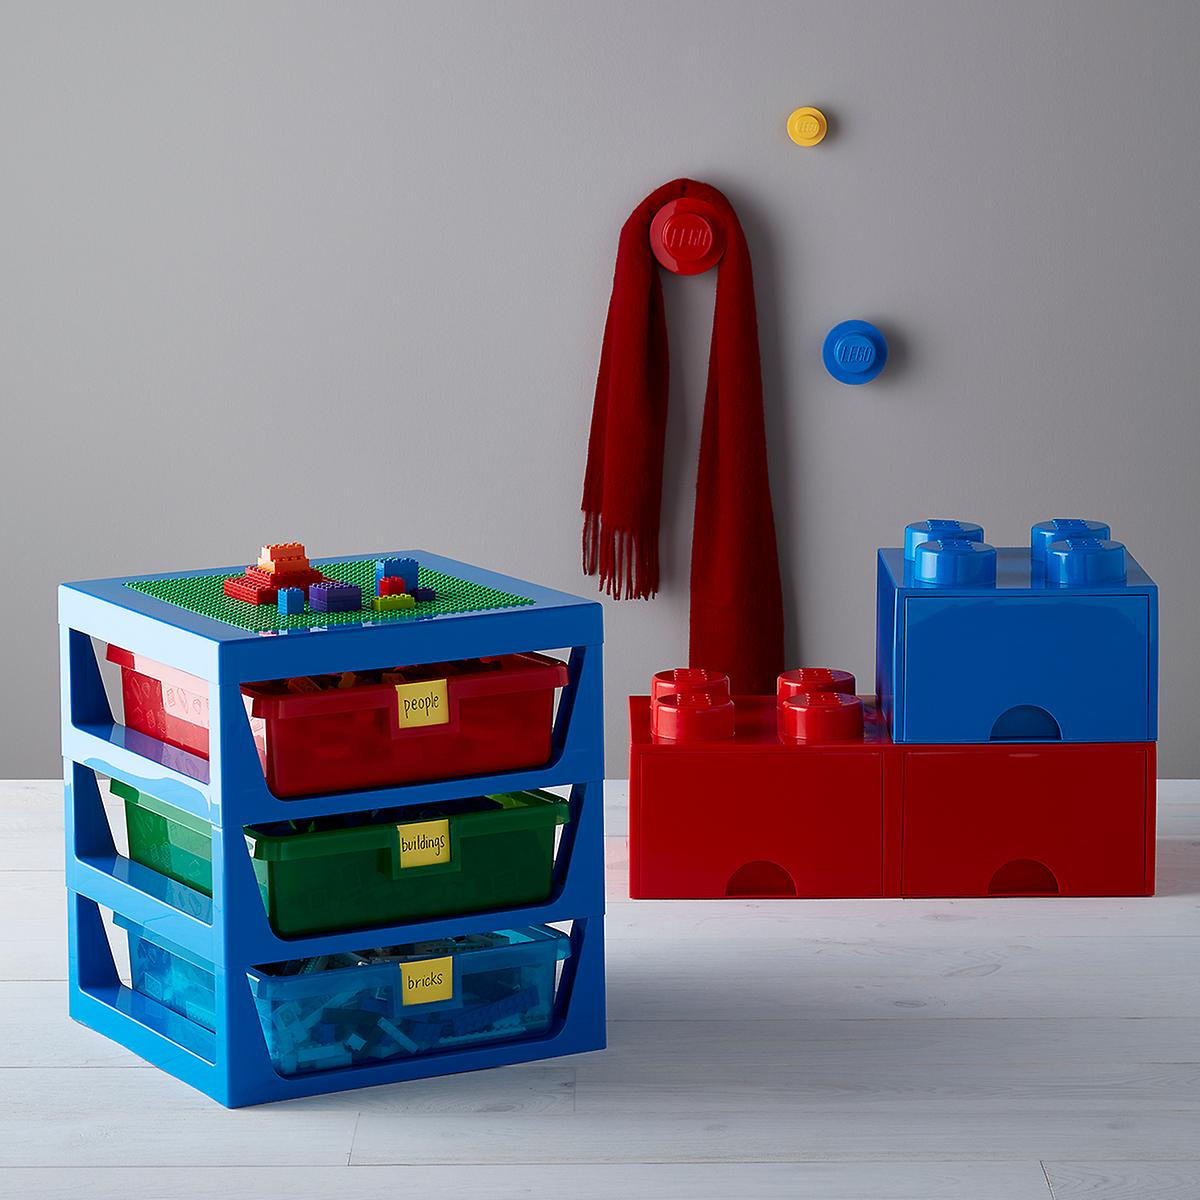 Lego 3-Tier Drawer Organizer with Baseplate